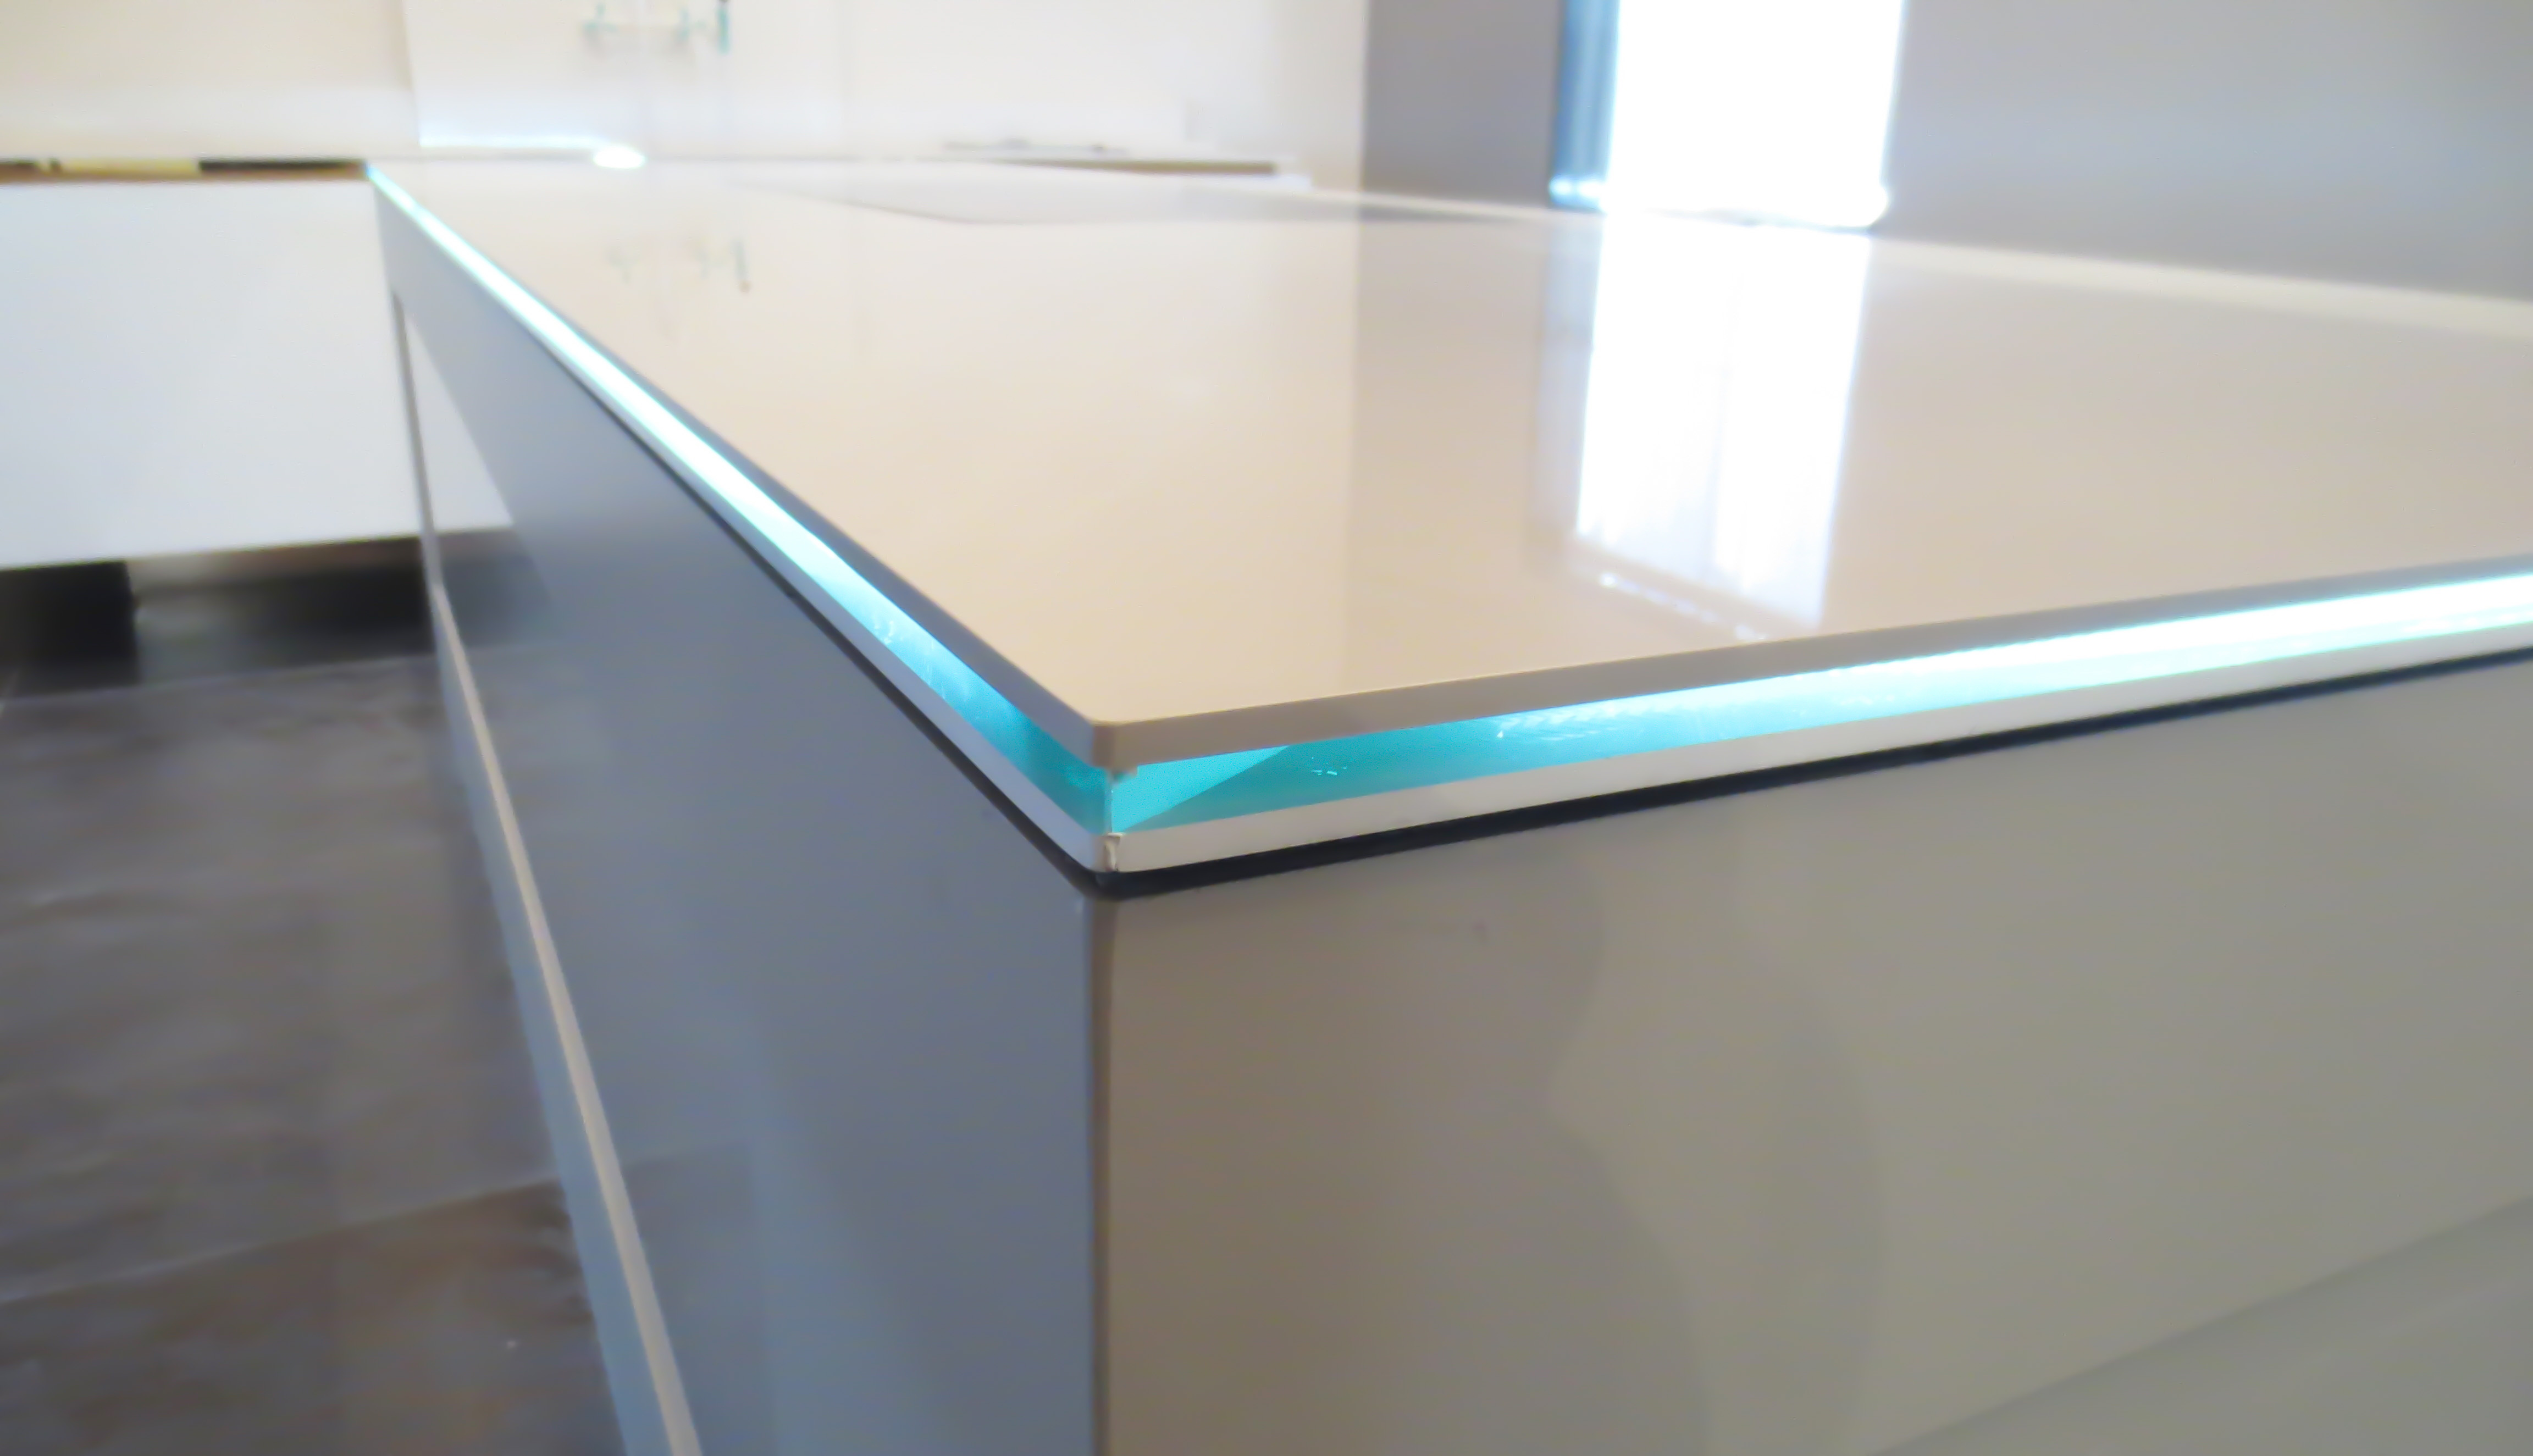 best slab countertop sink countertops pinterest kitchen how of images on ideas clean new a porcelain charming to luxury